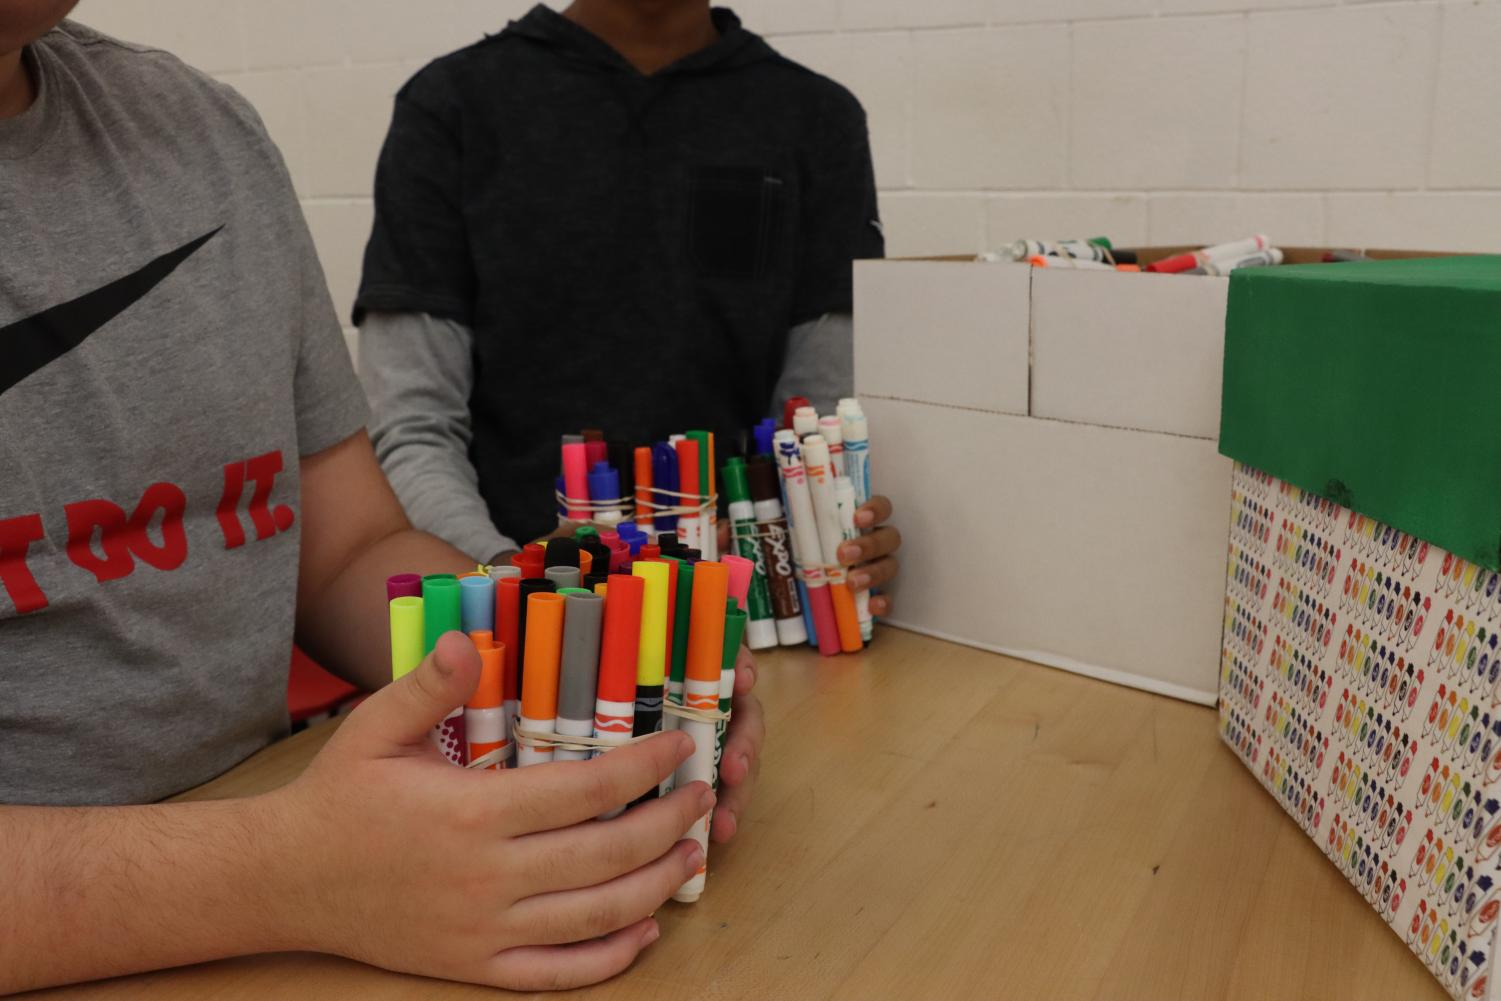 Students from the work experience class have been collecting dead markers since the beginning of the school year. They have collect over 200 markers to give back later this year to Crayola.